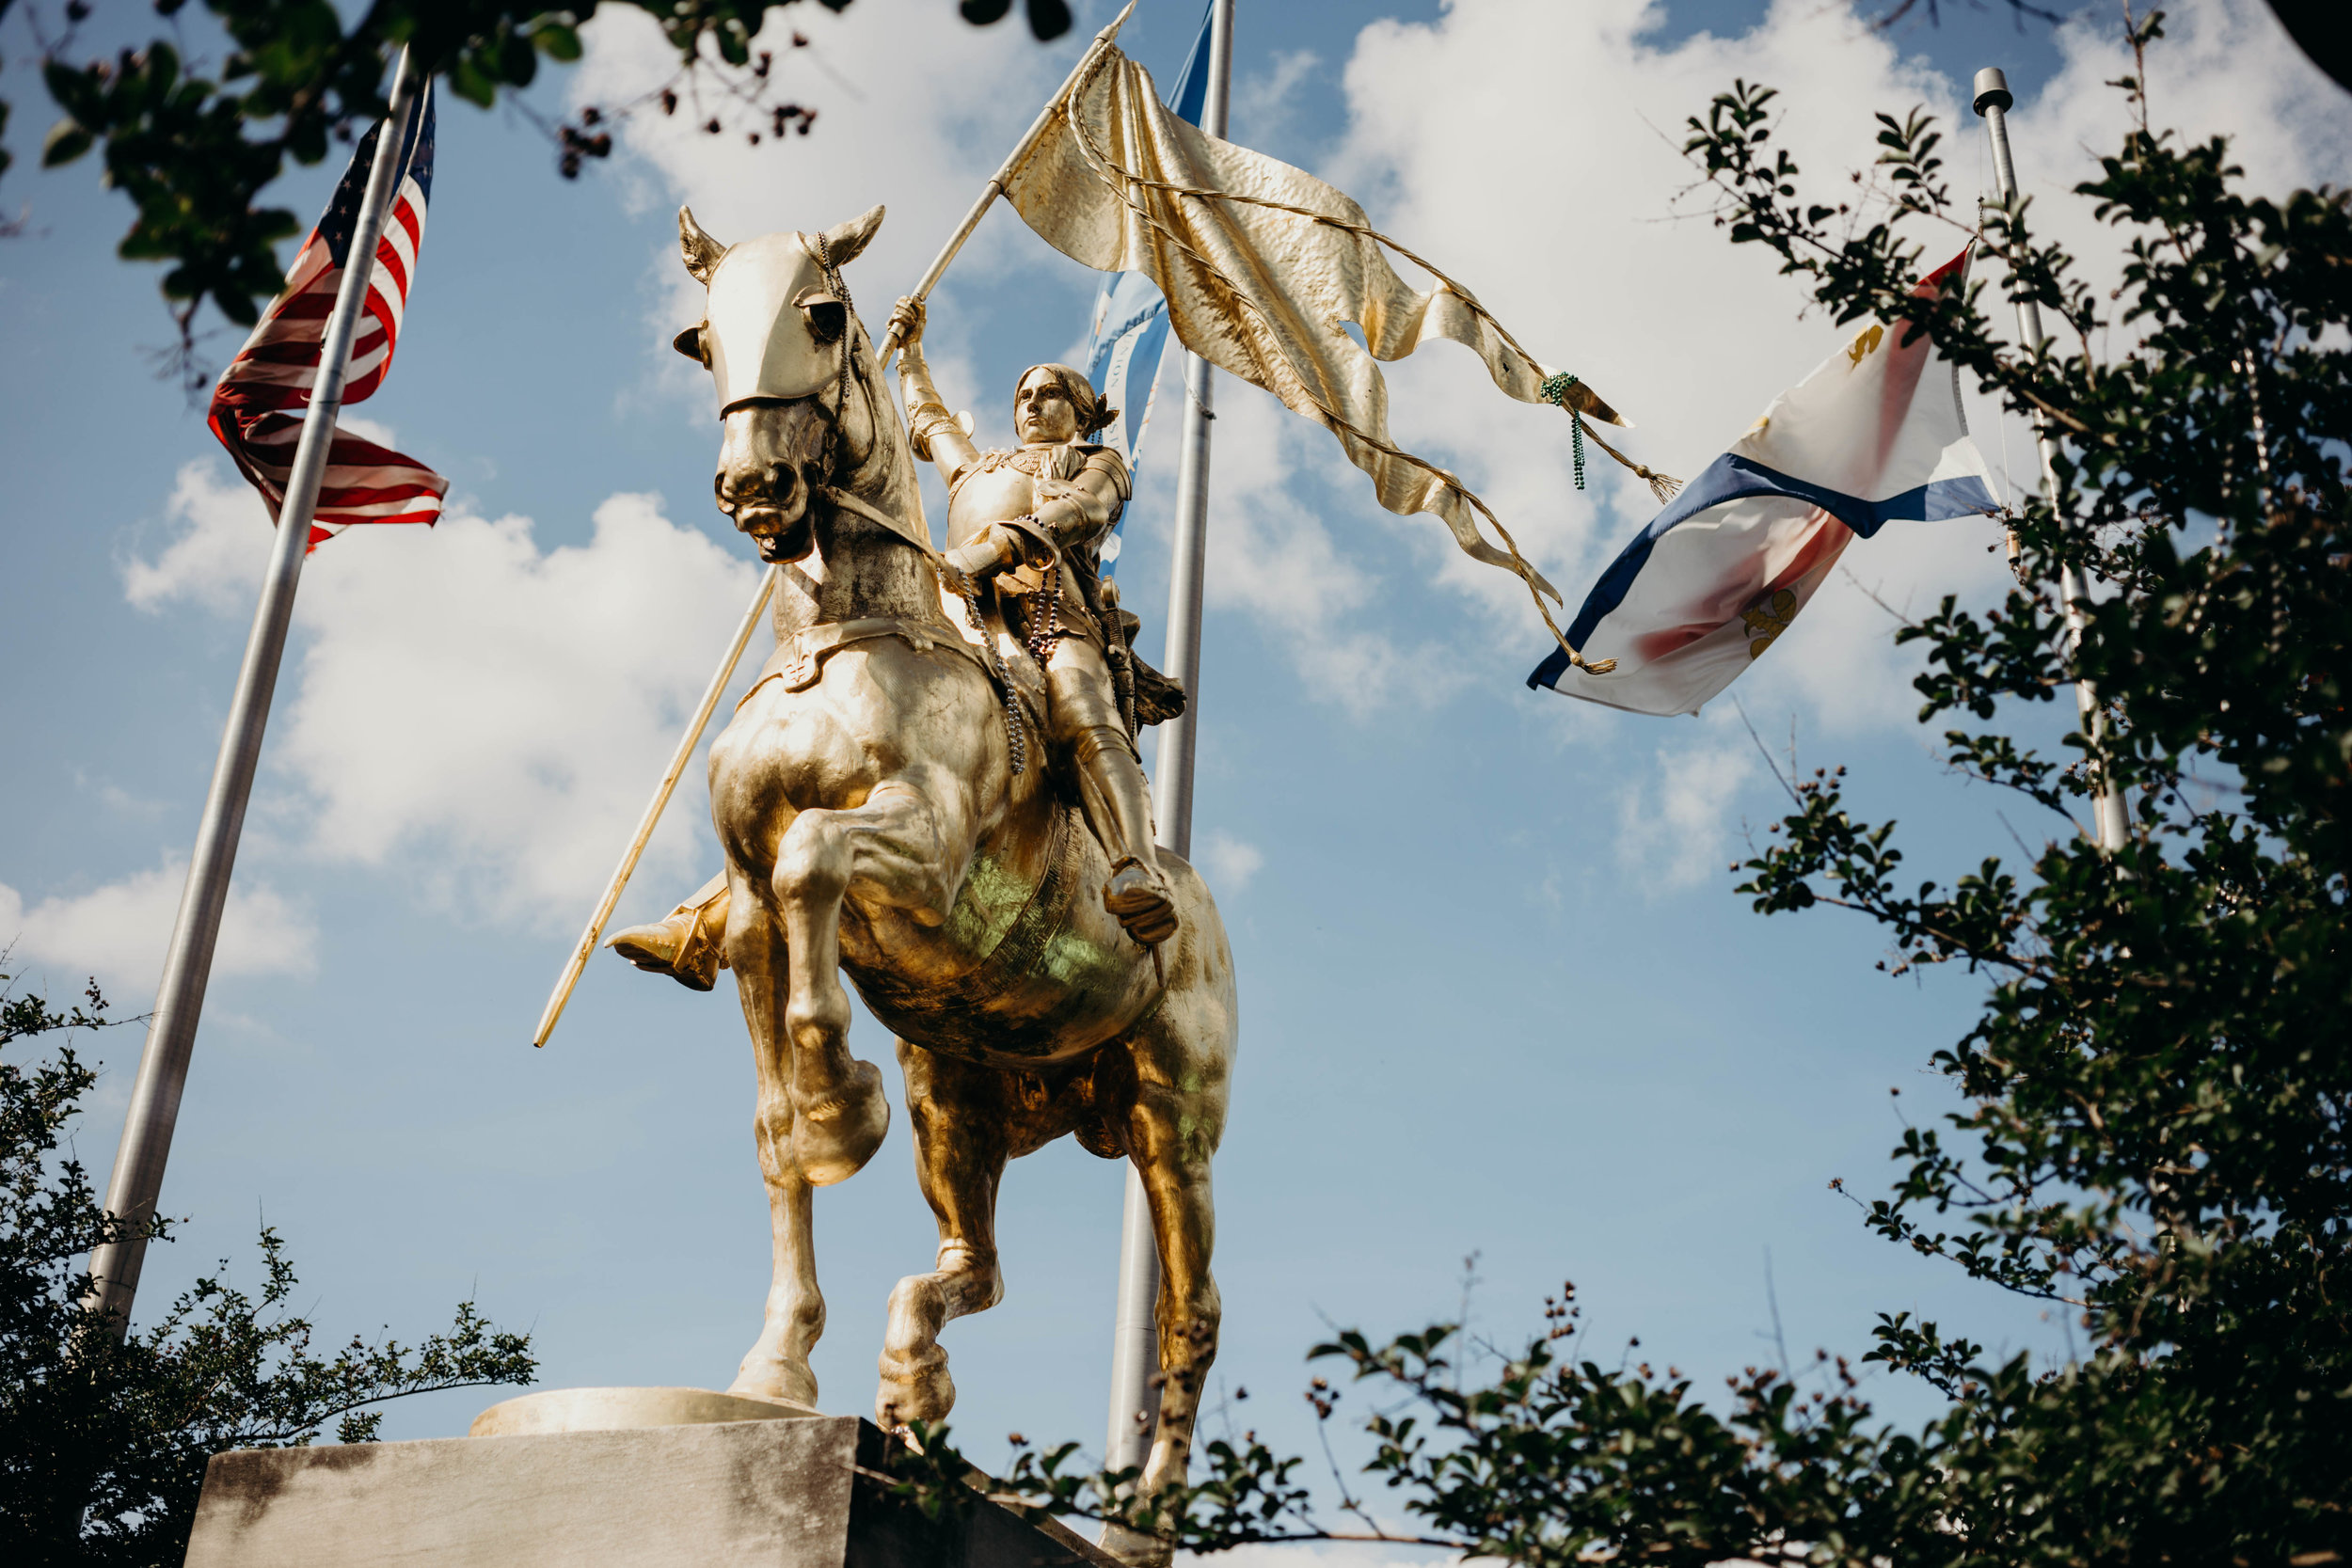 Joan of Arc, the Maid of Orleans watches over the city as its Patron Saint. - A gift from France in 1953, this gilded statue portrays the defender of Orléans in a victorious pose.